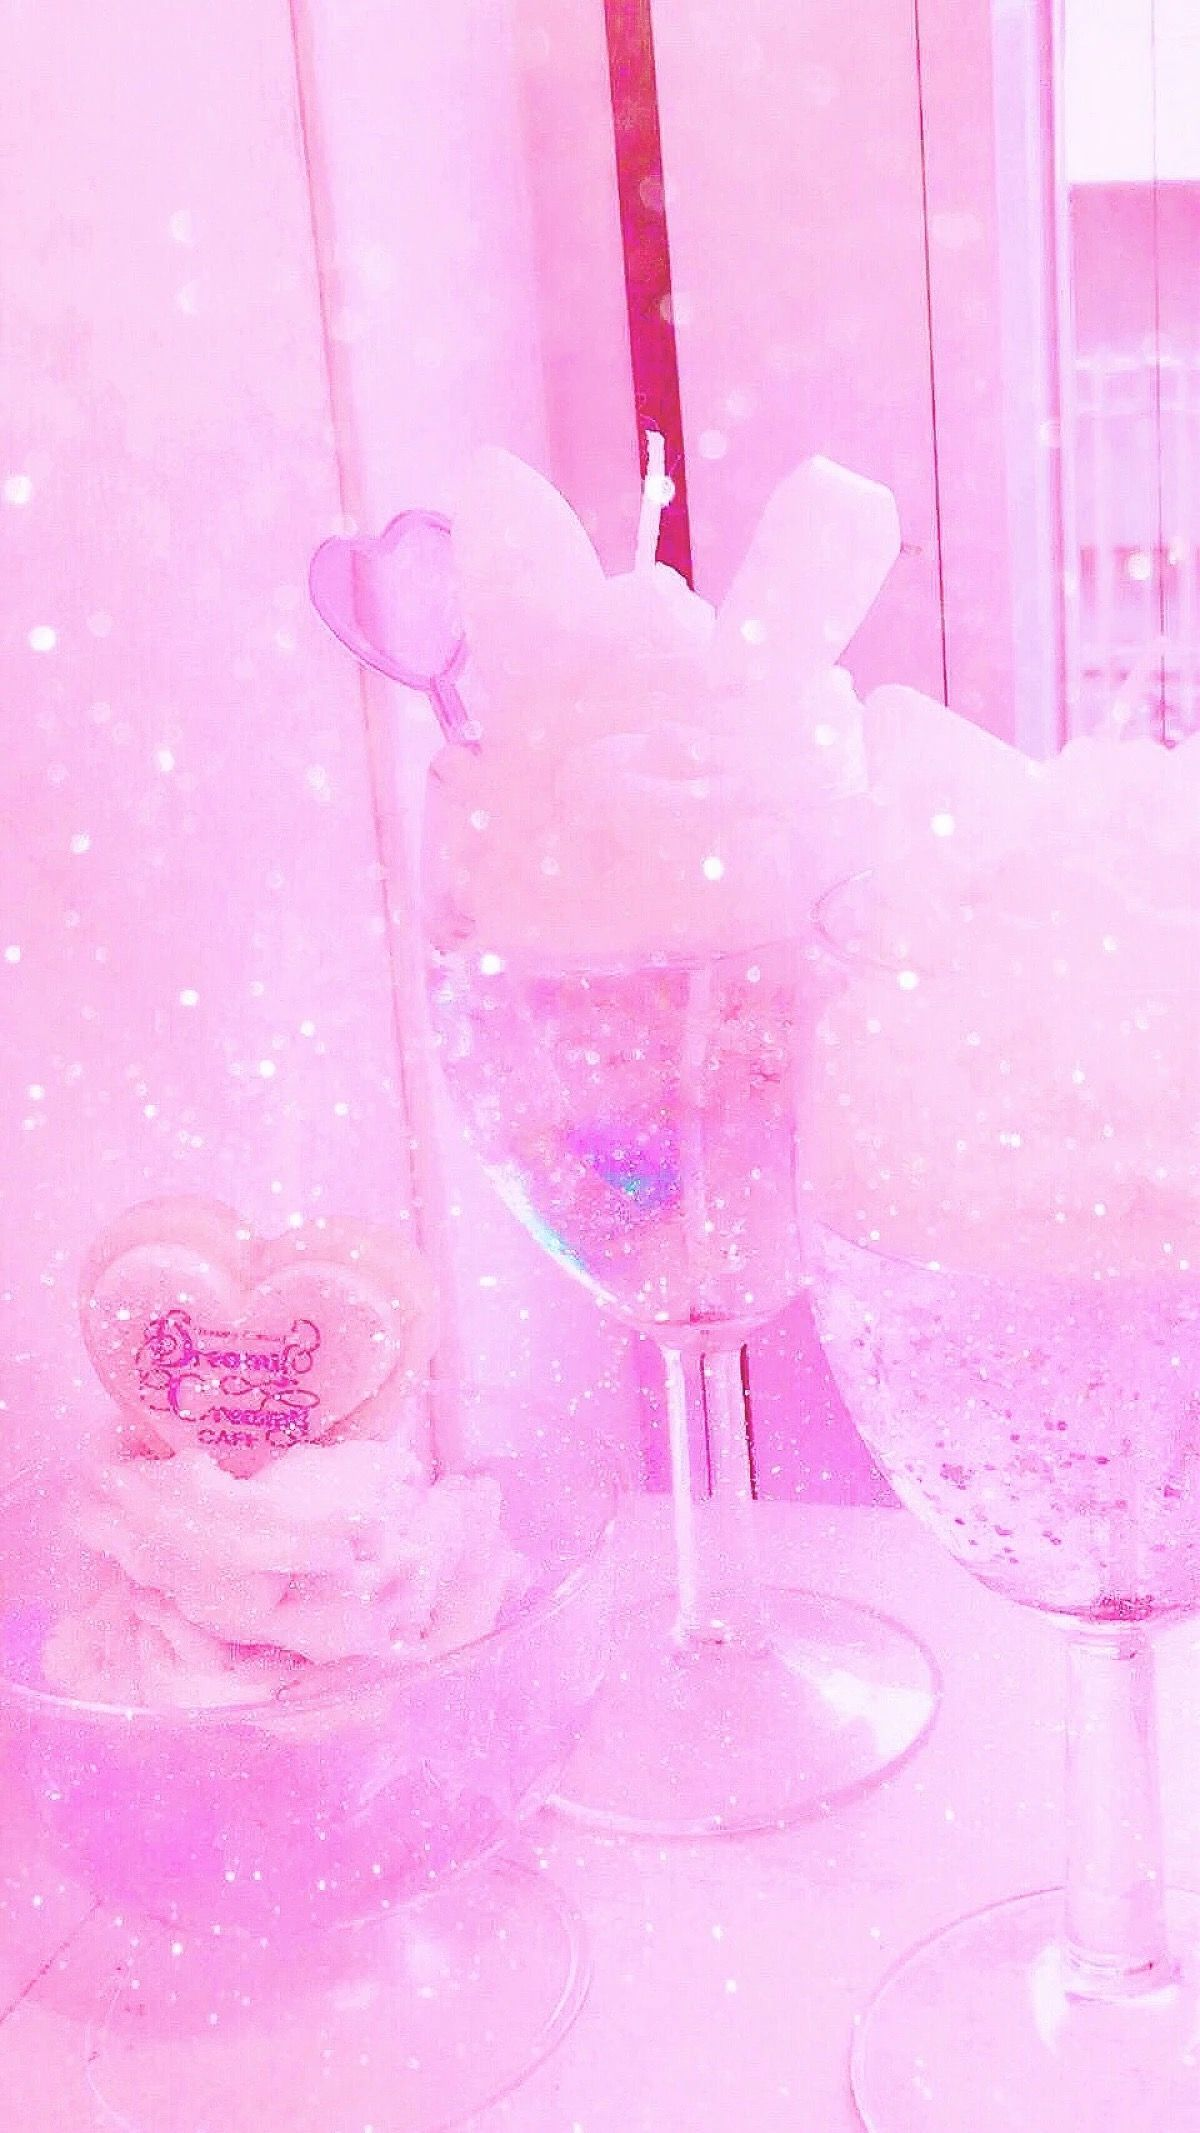 Cute Pastel Pink Aesthetic Wallpapers - Wallpaper Cave